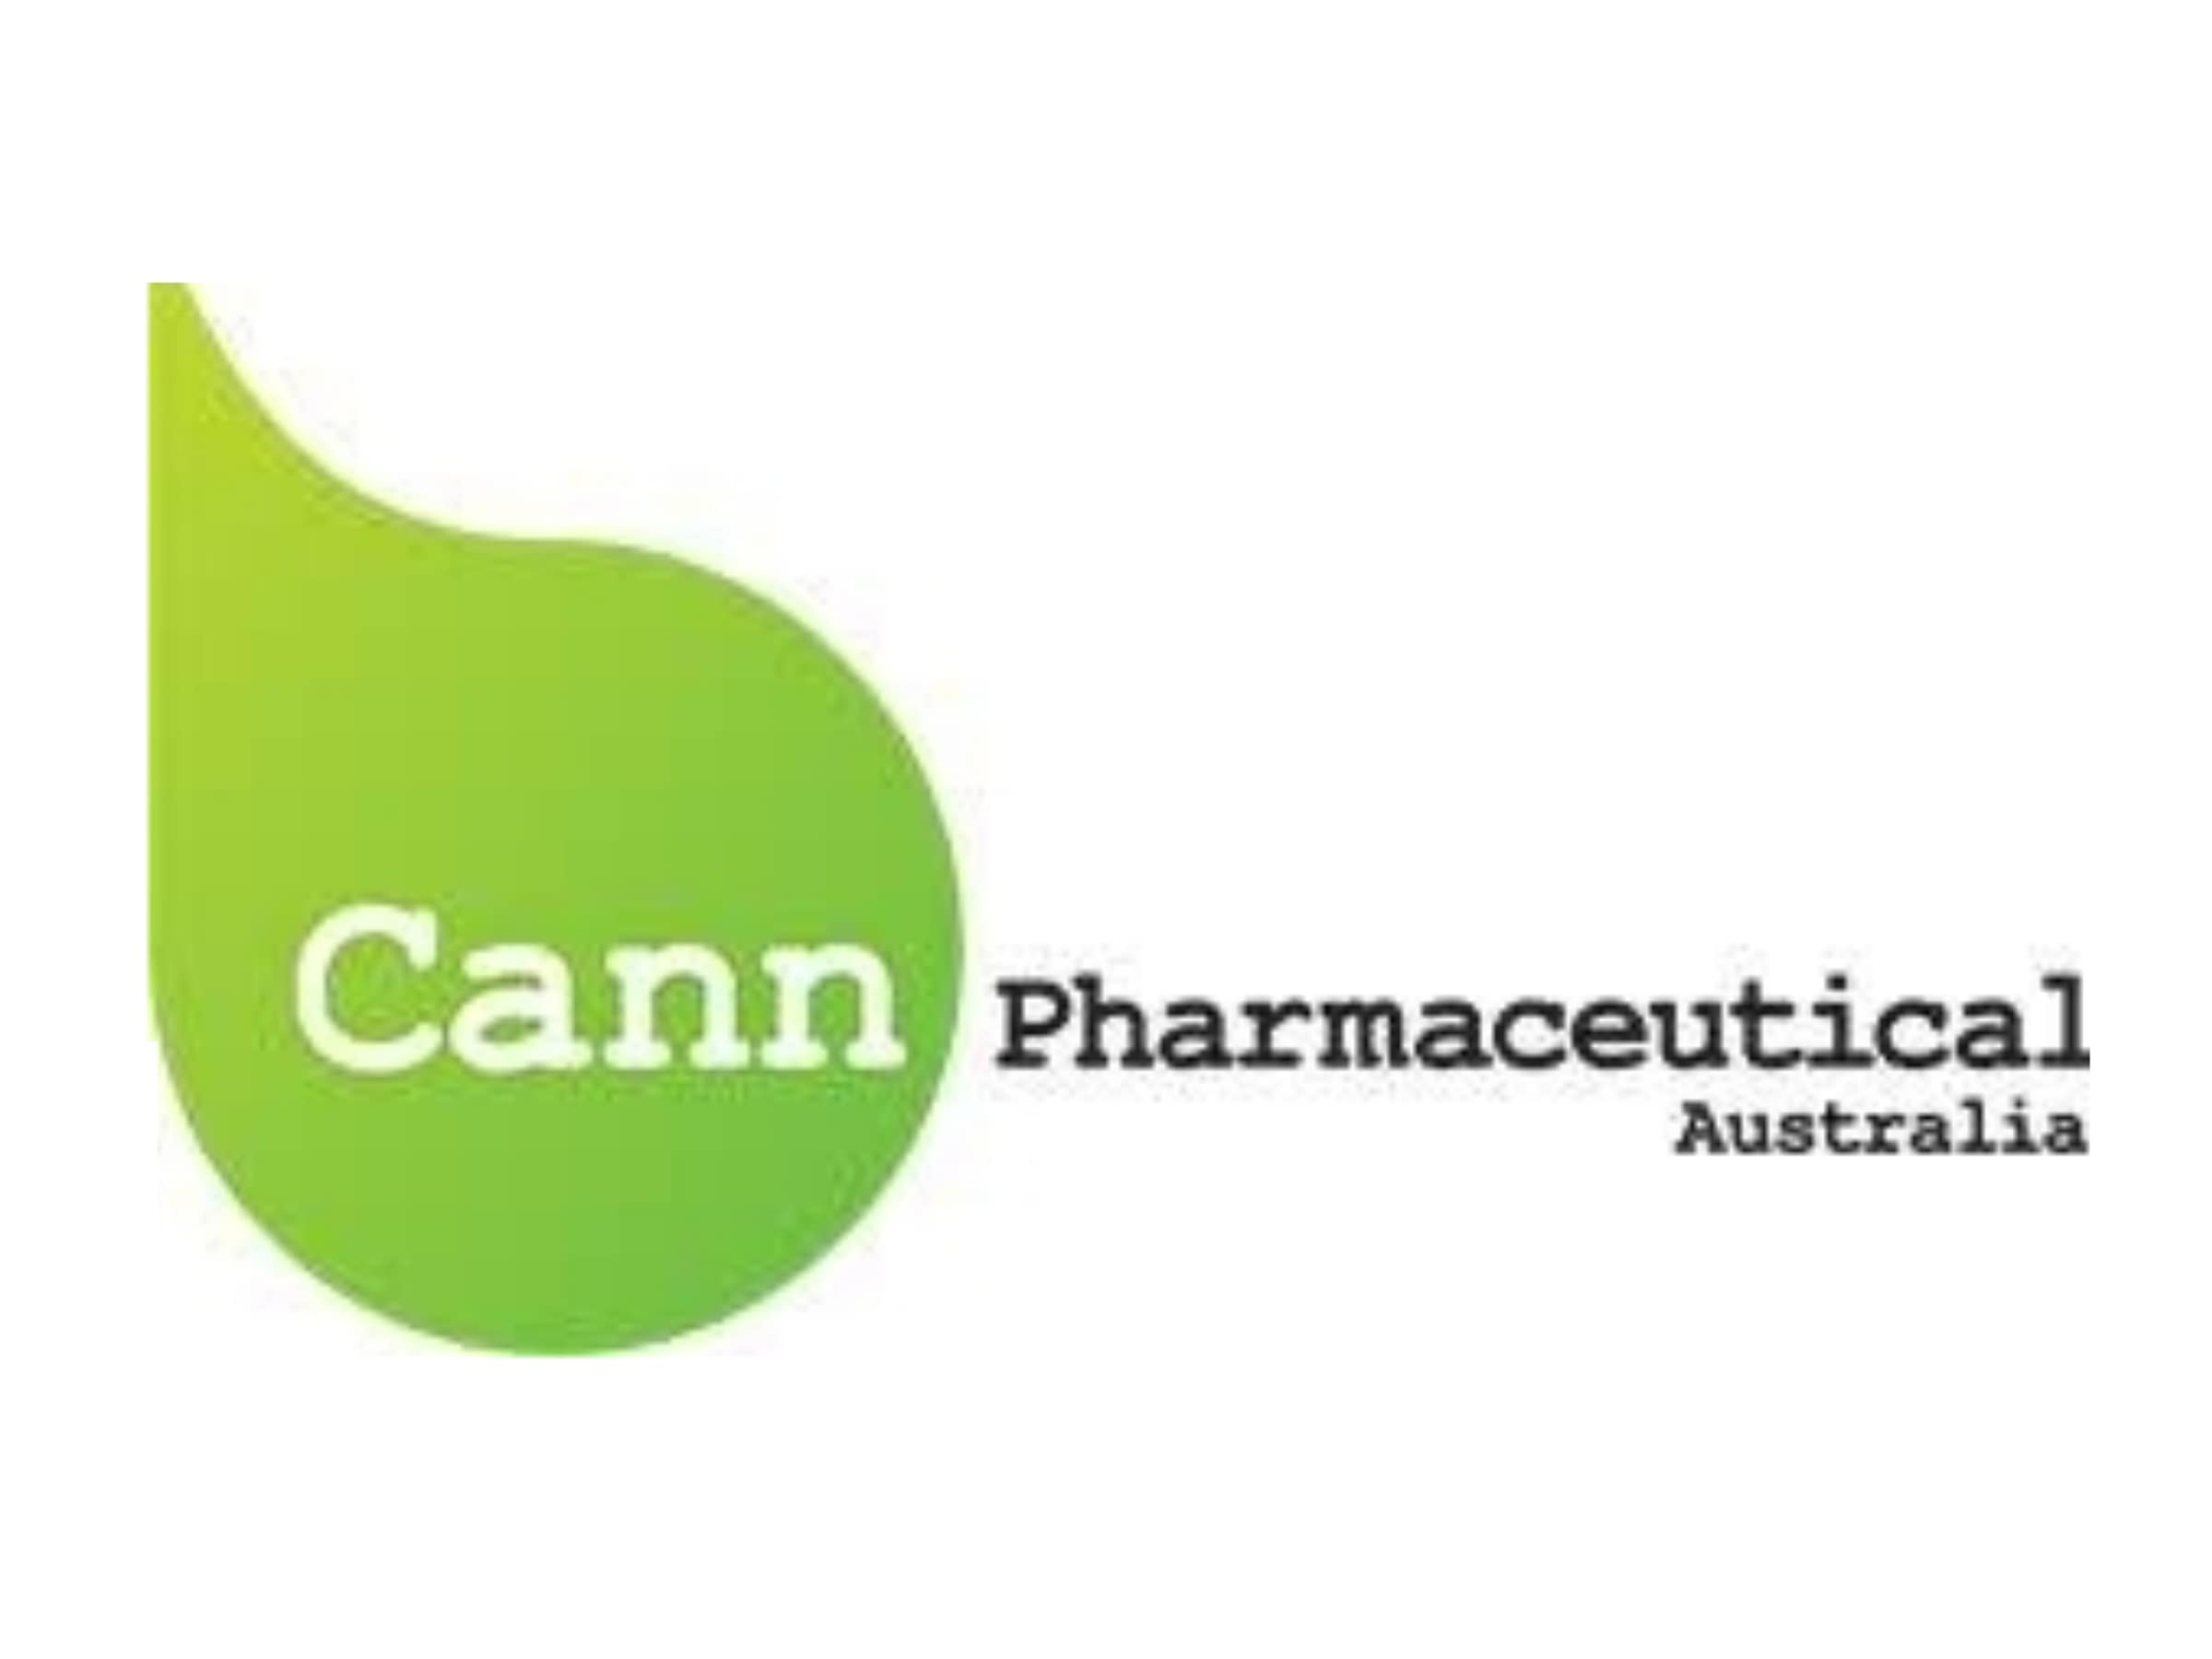 Cann Pharmaceutical Australia Ltd (Cann Group Limited)